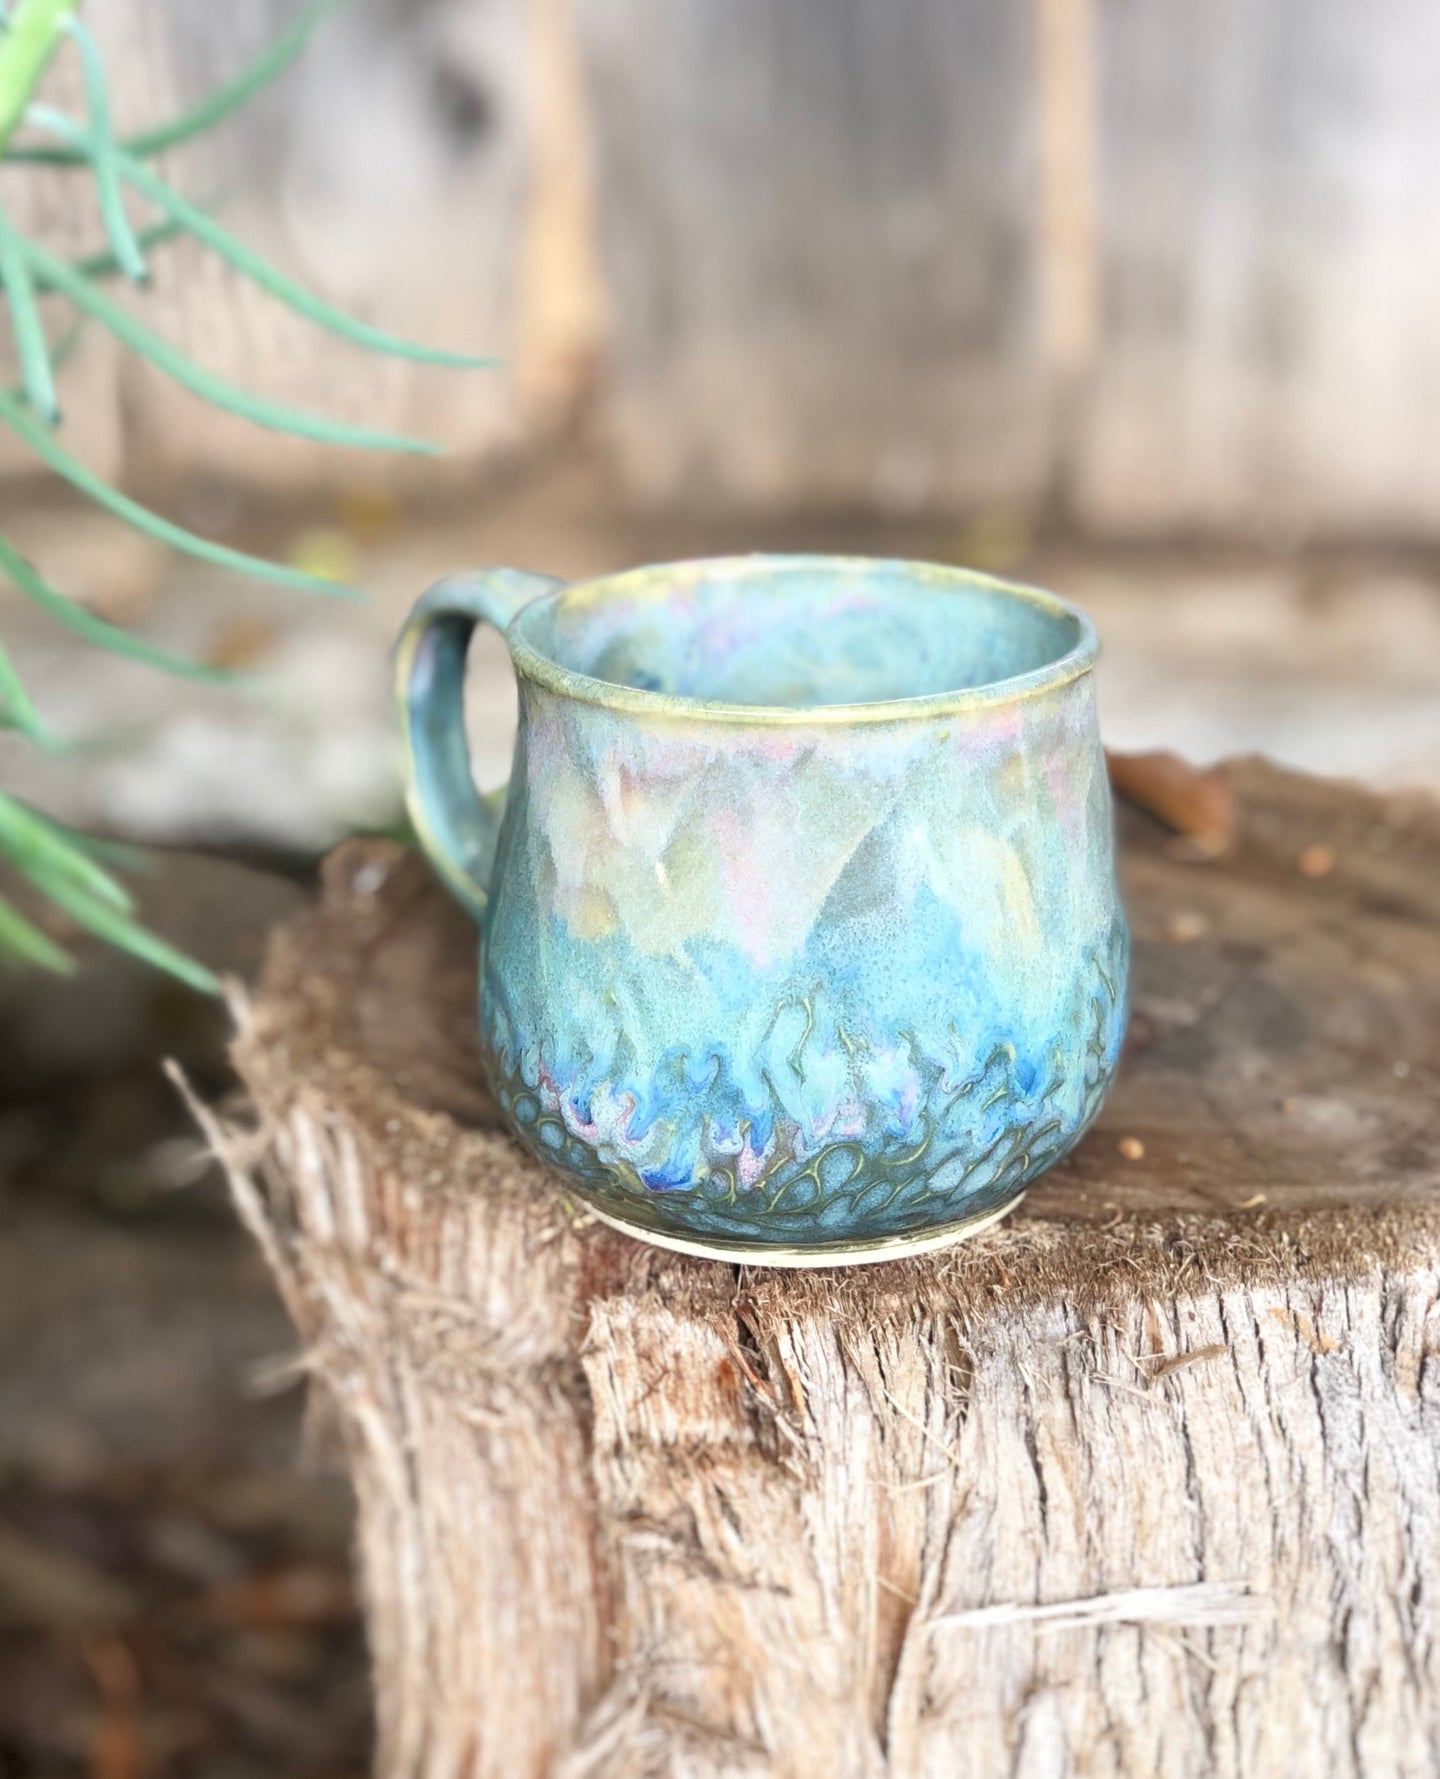 Pink Blue Opal Mug  - Dreamy Soft Multi Color Ceramic Mug 12 oz - Hsiaowan Studios Handmade Ceramics Pottery